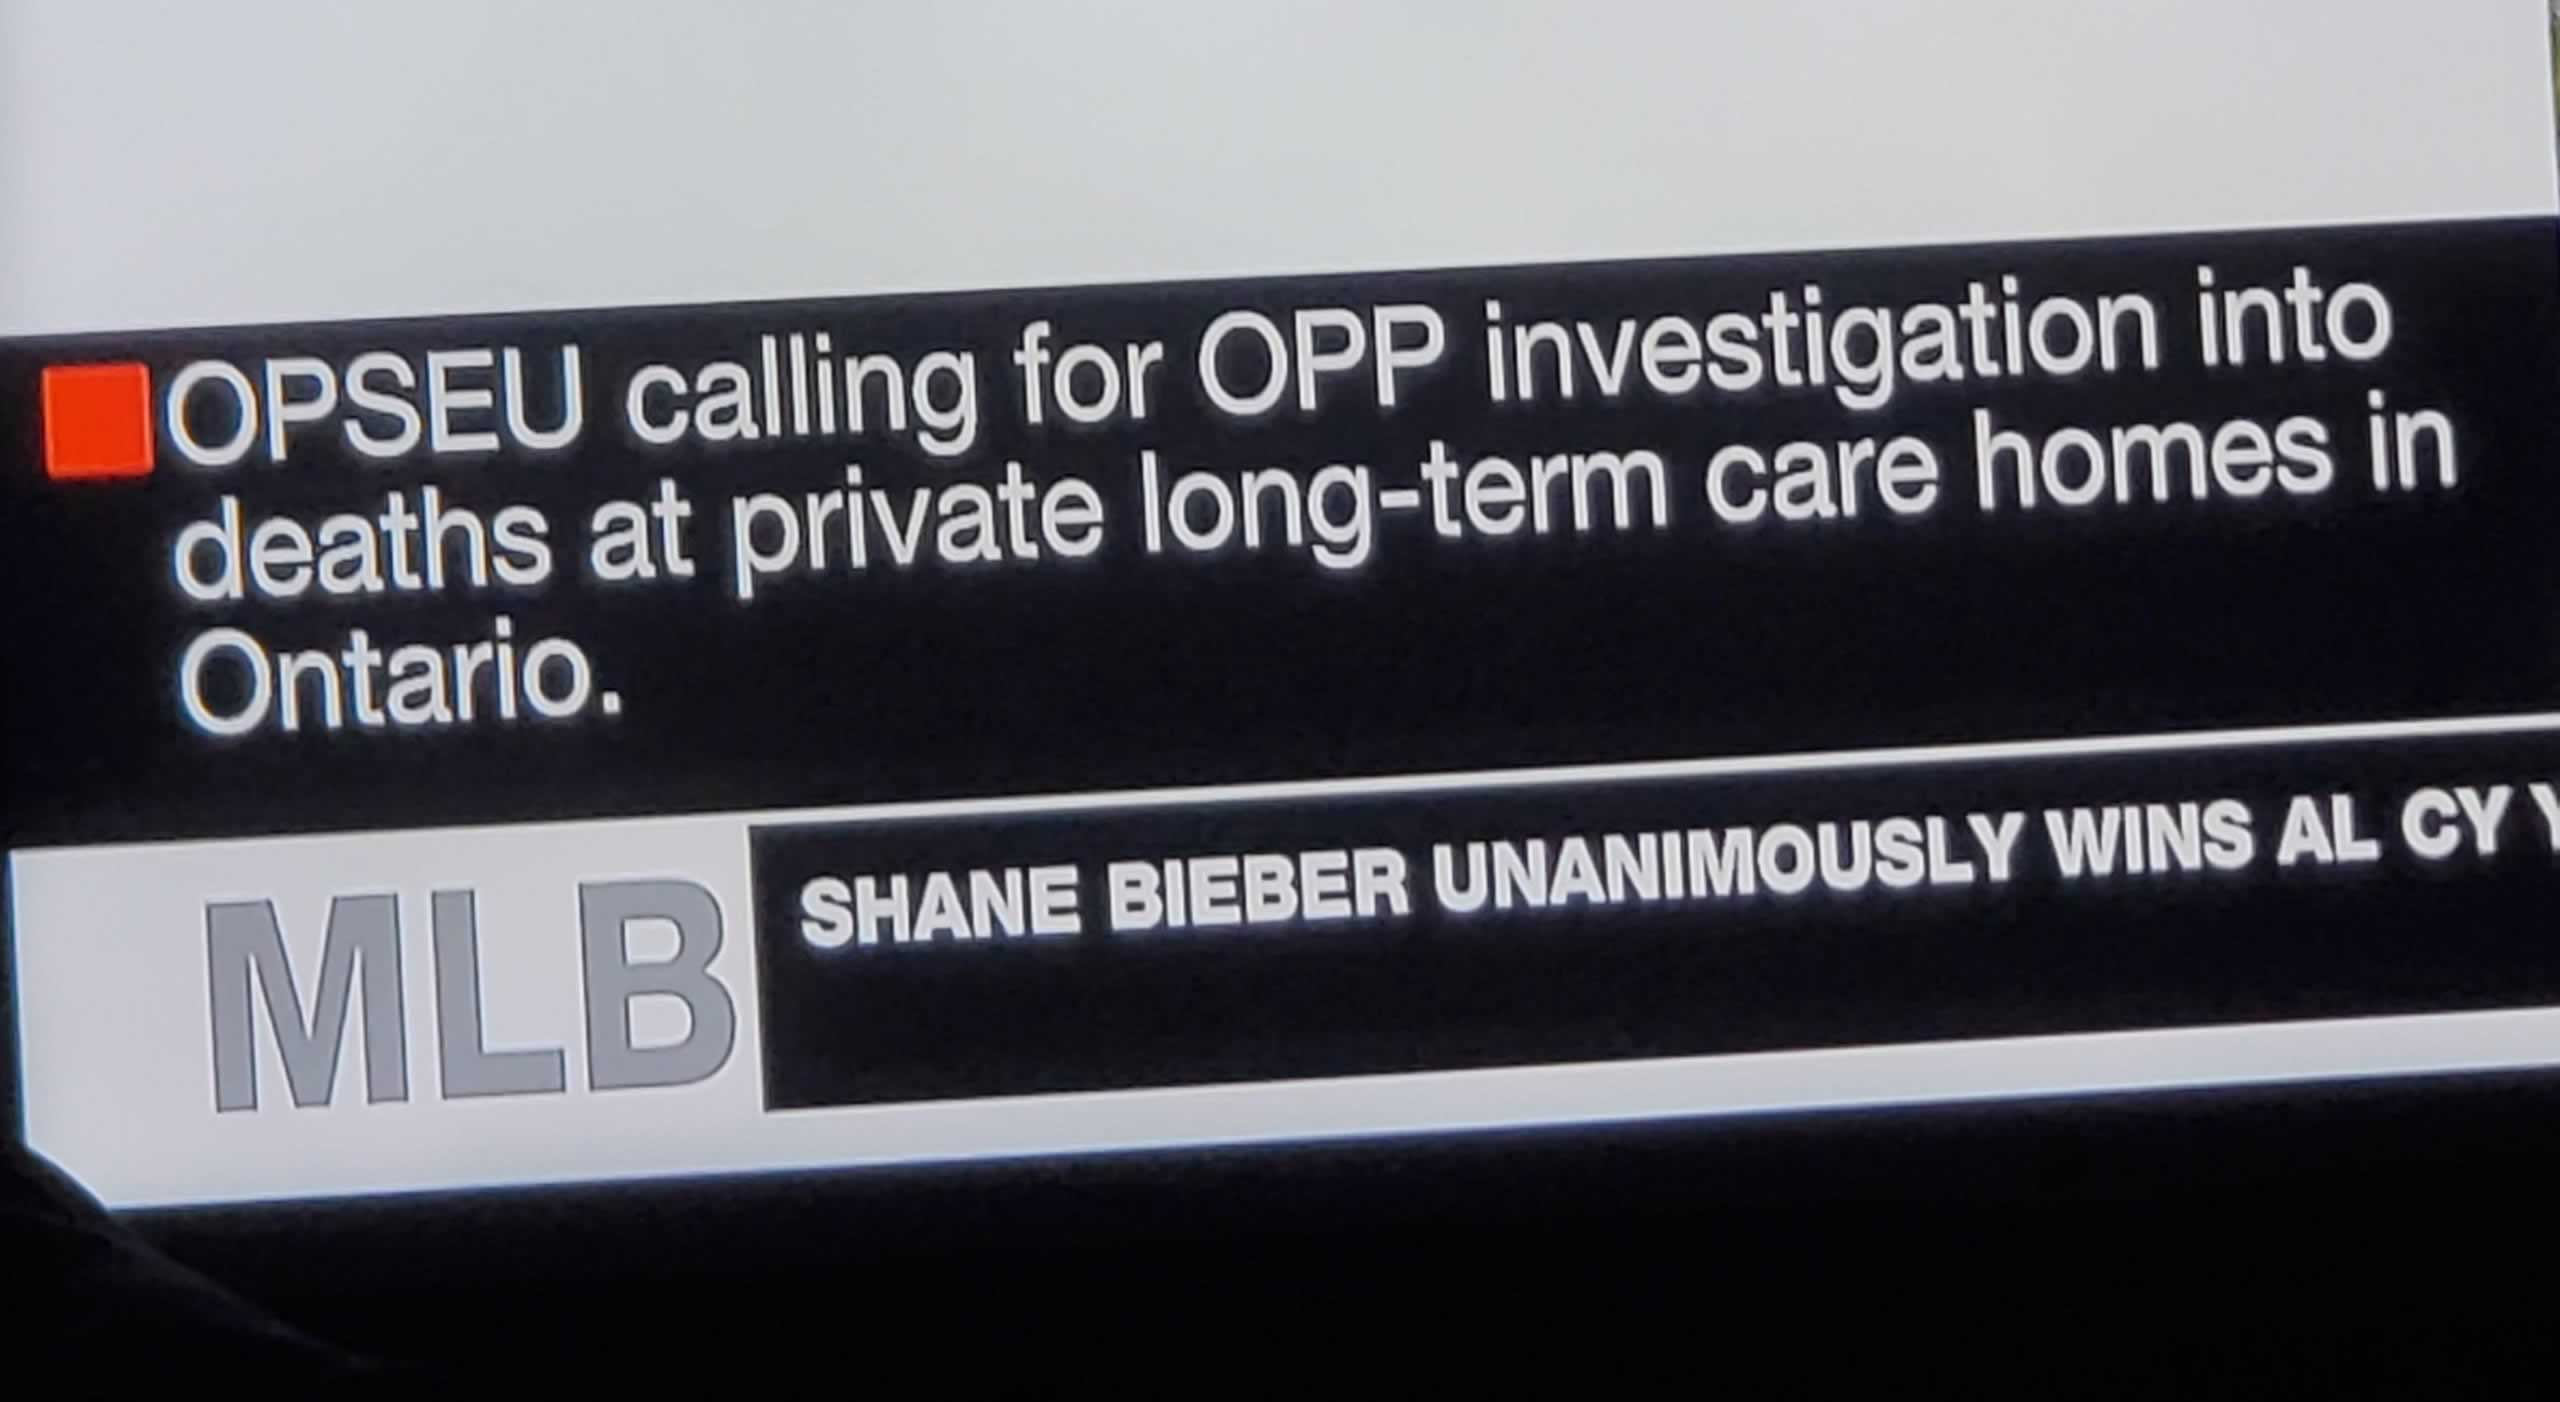 CP24 headline: OPSEU calling for OPP investigation into deaths at private long-term care homes in Ontario